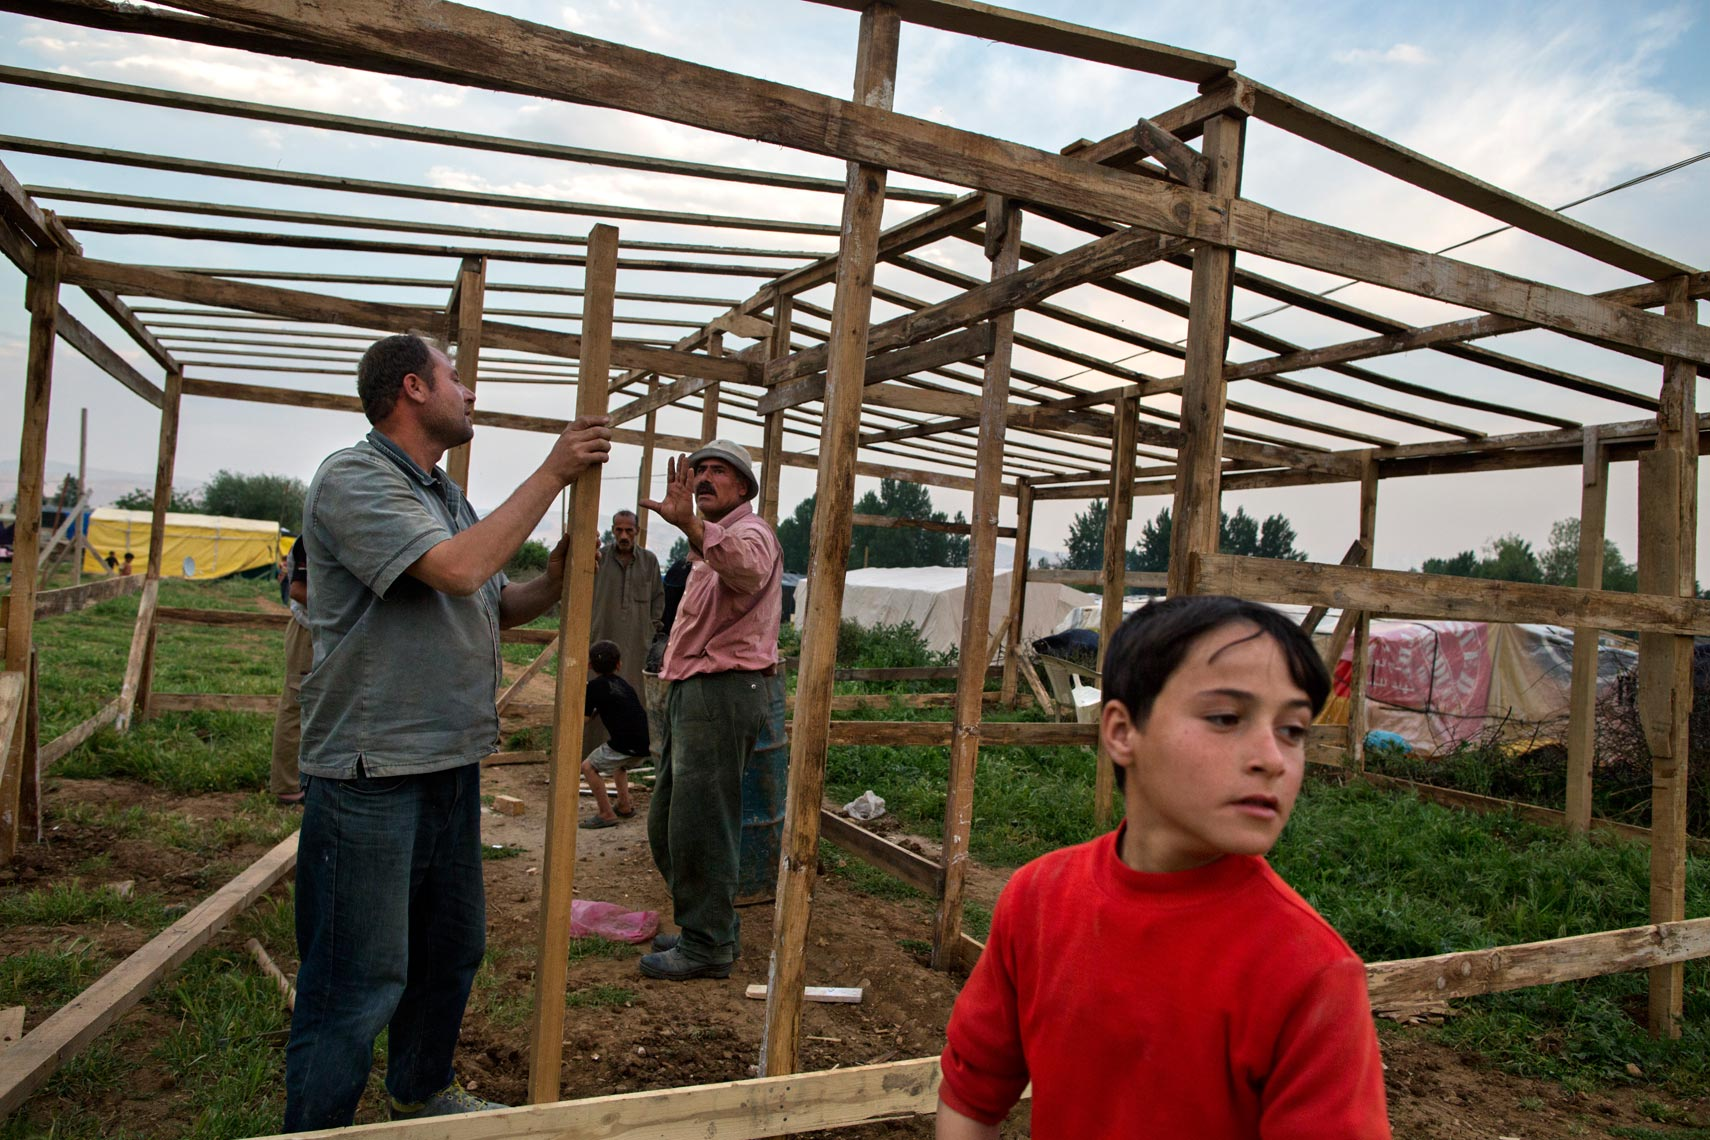 Refugees build shelter